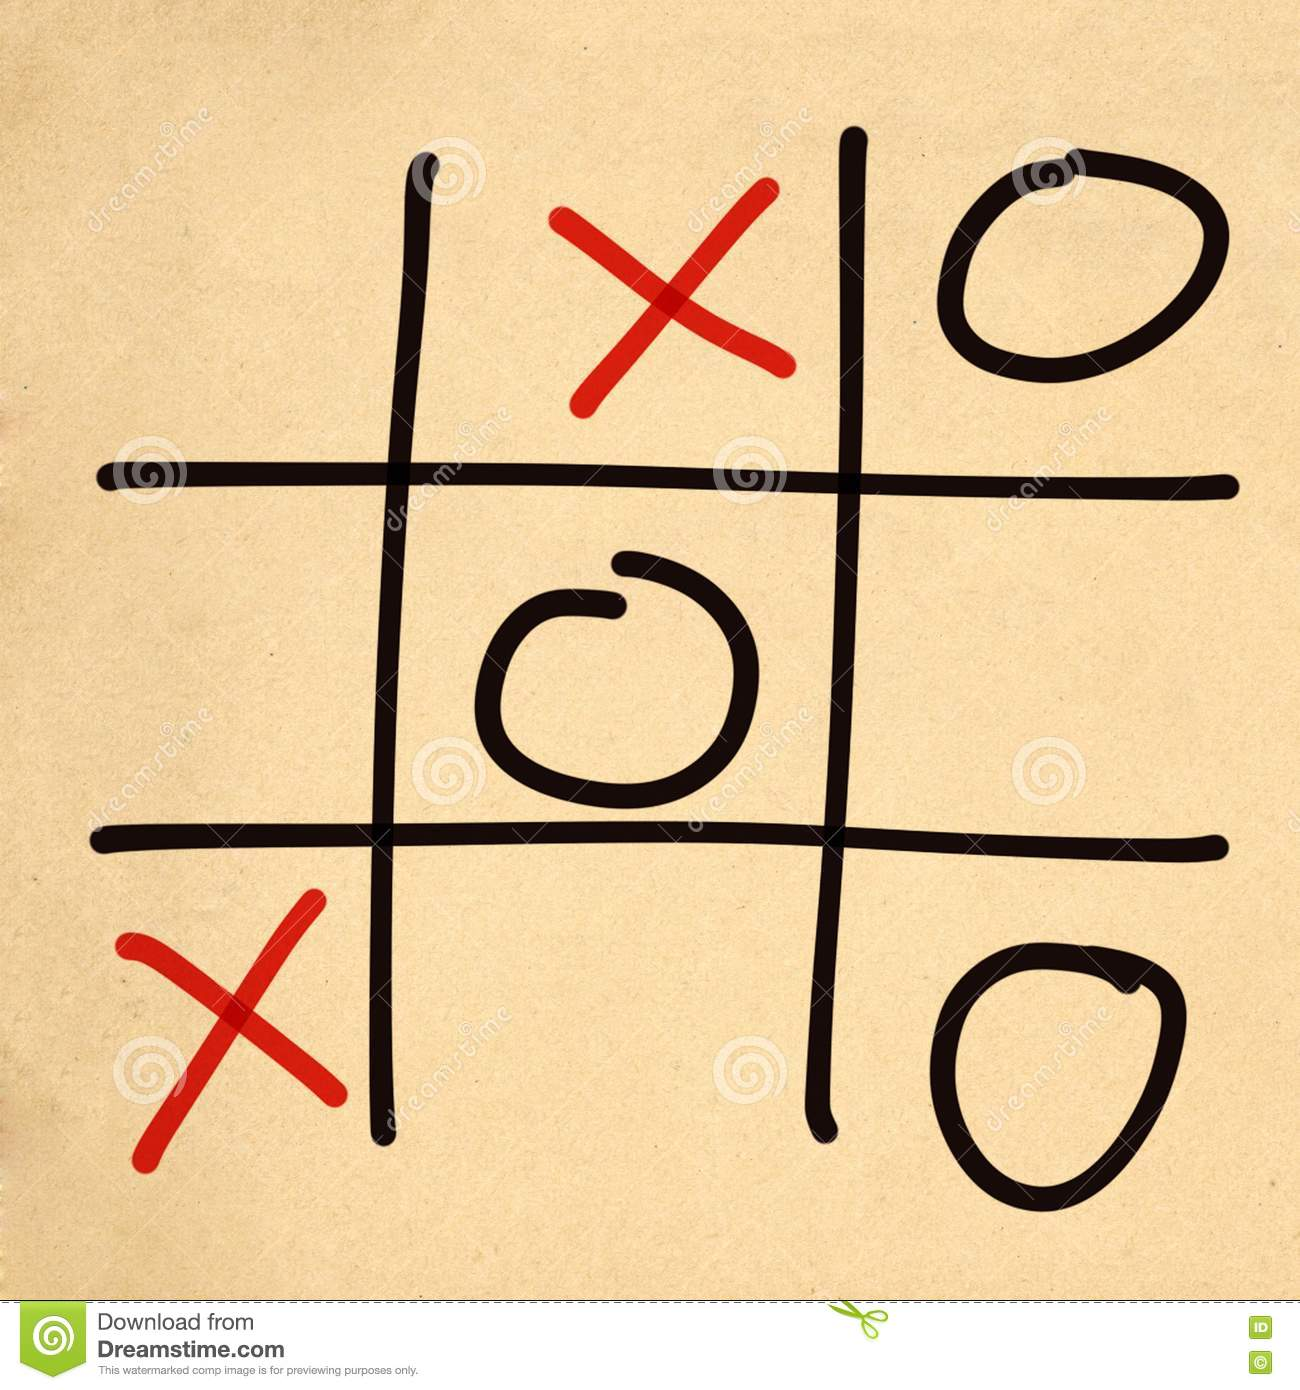 Illustration Tic Tac Toe XO Game Stock Illustration - Image: 75695046